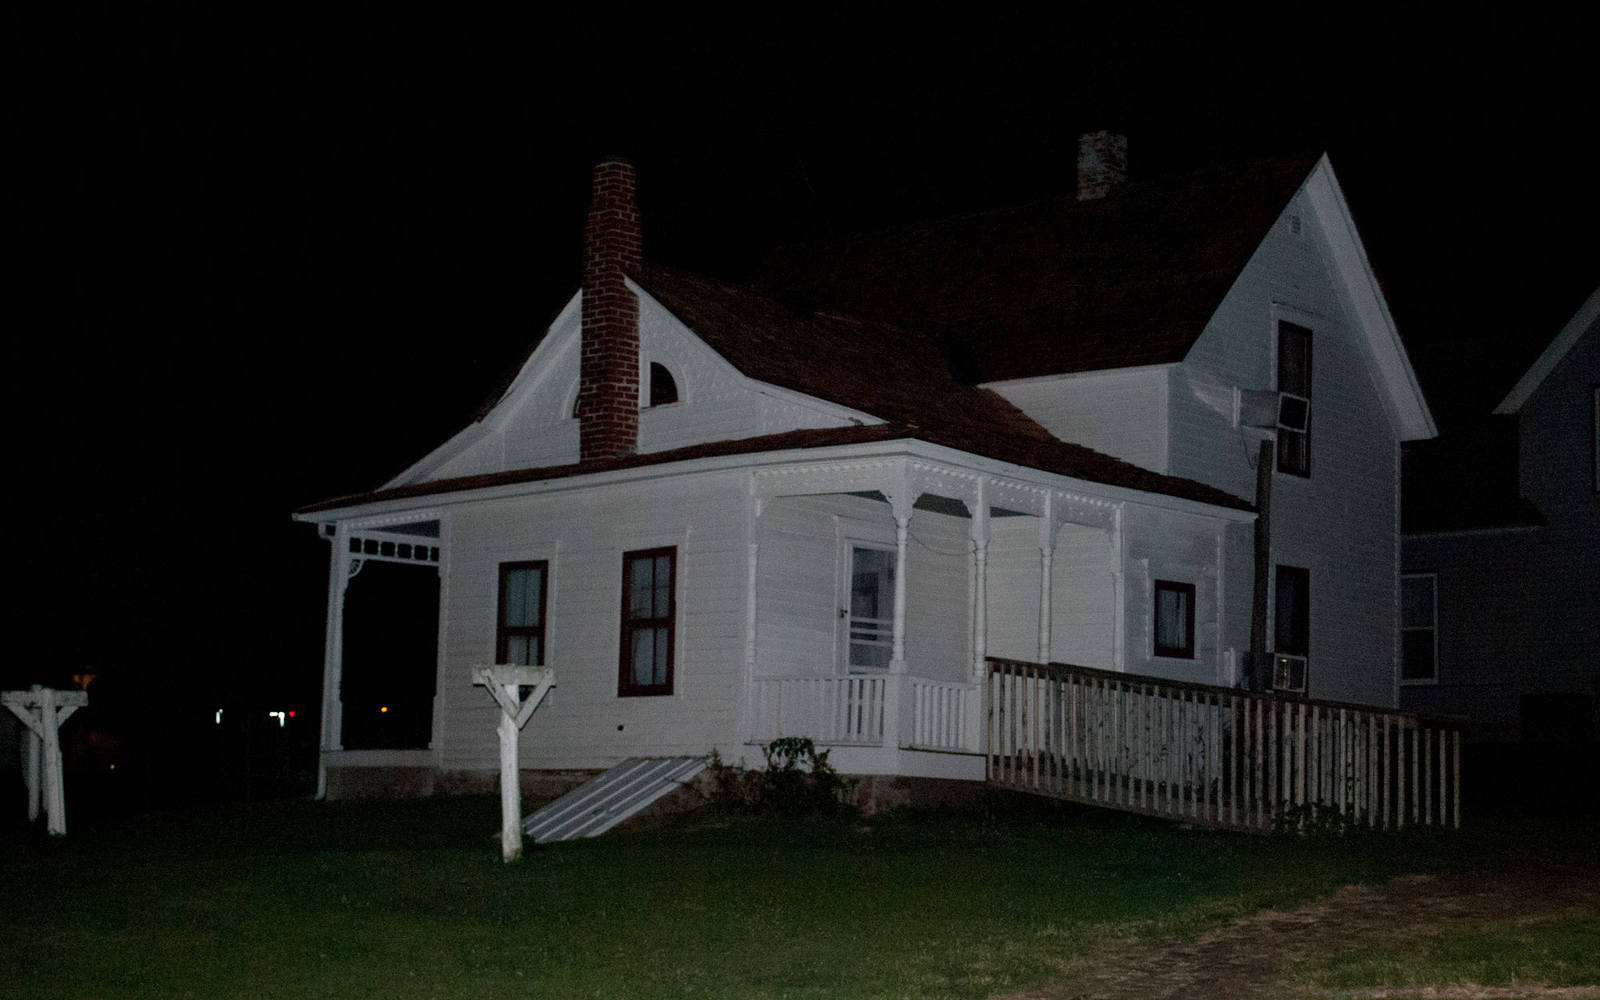 Villisca Axe House